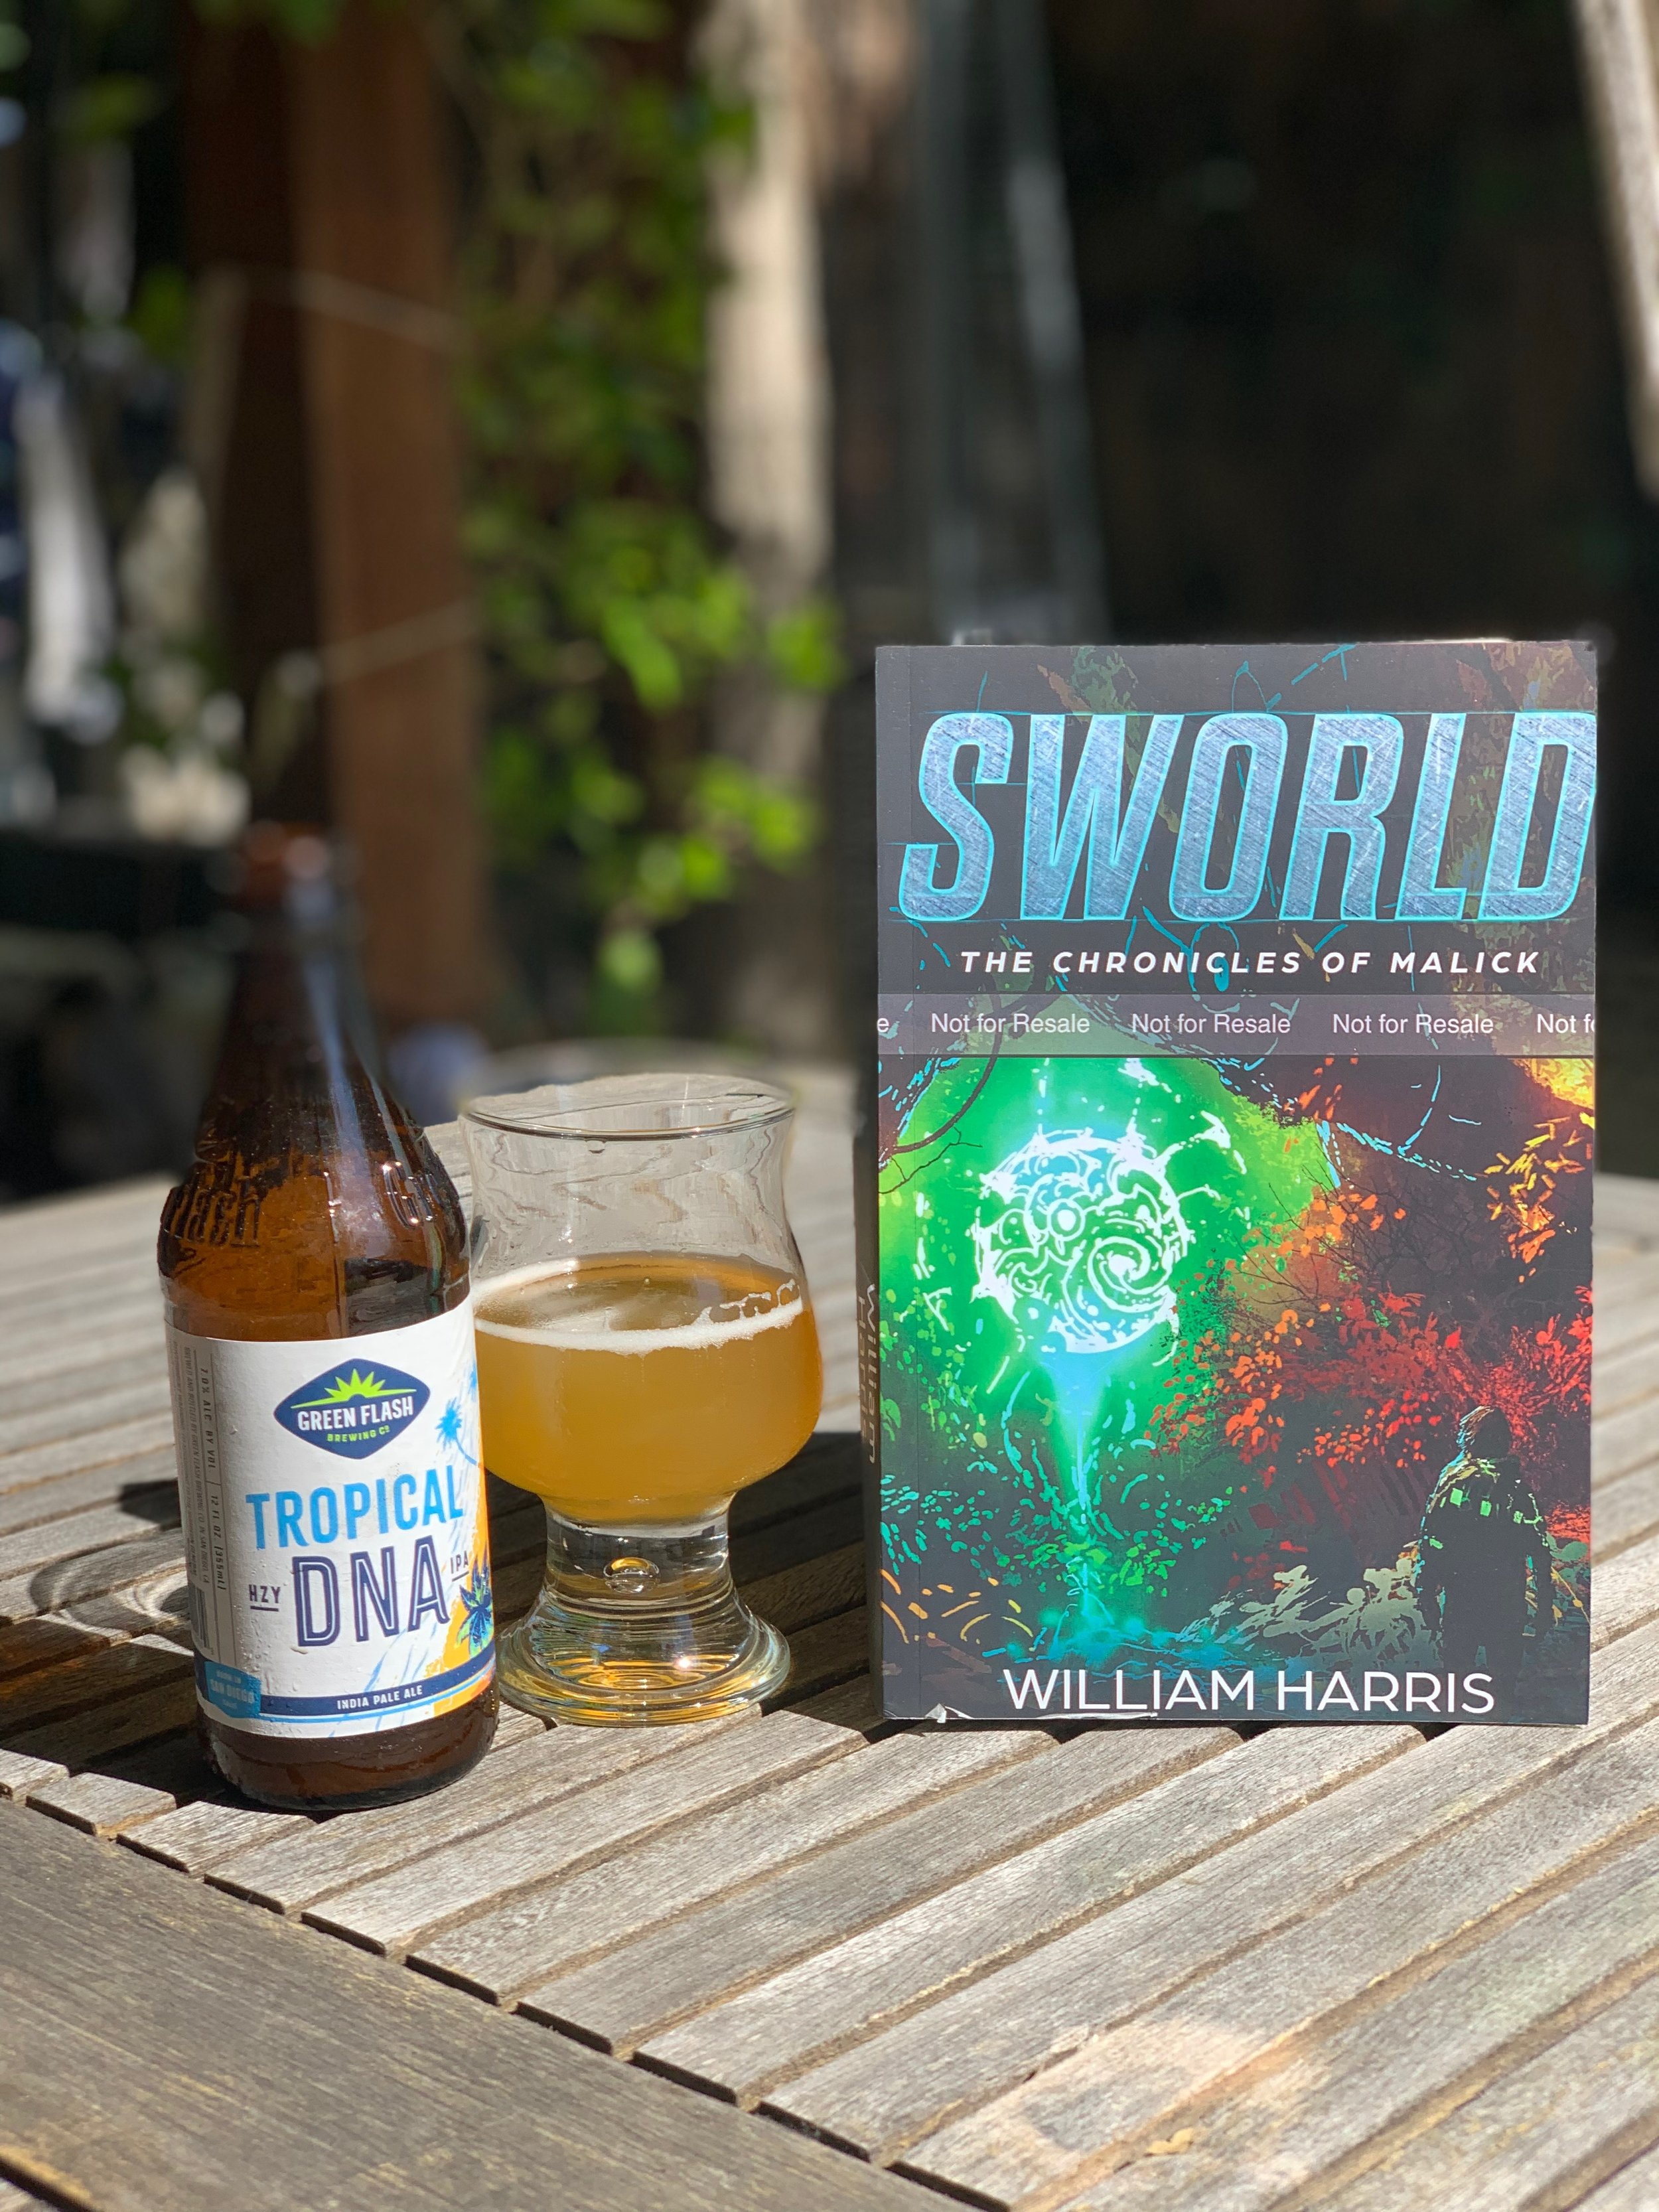 Beer and sci-fi? Yes please!